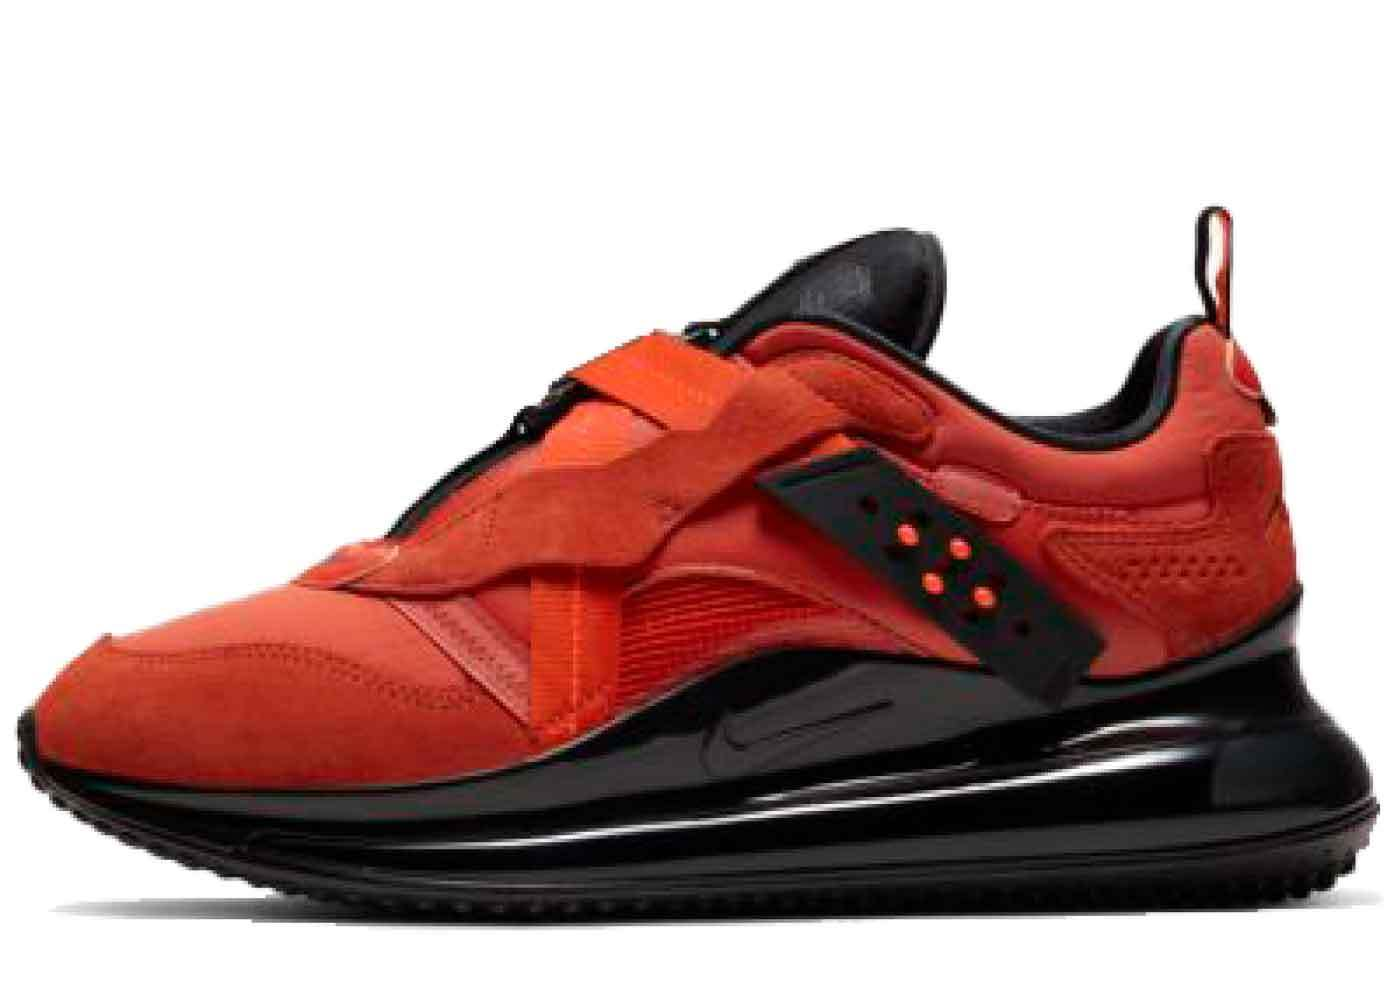 Nike Air Max 720 OBJ Slip Team Orangeの写真